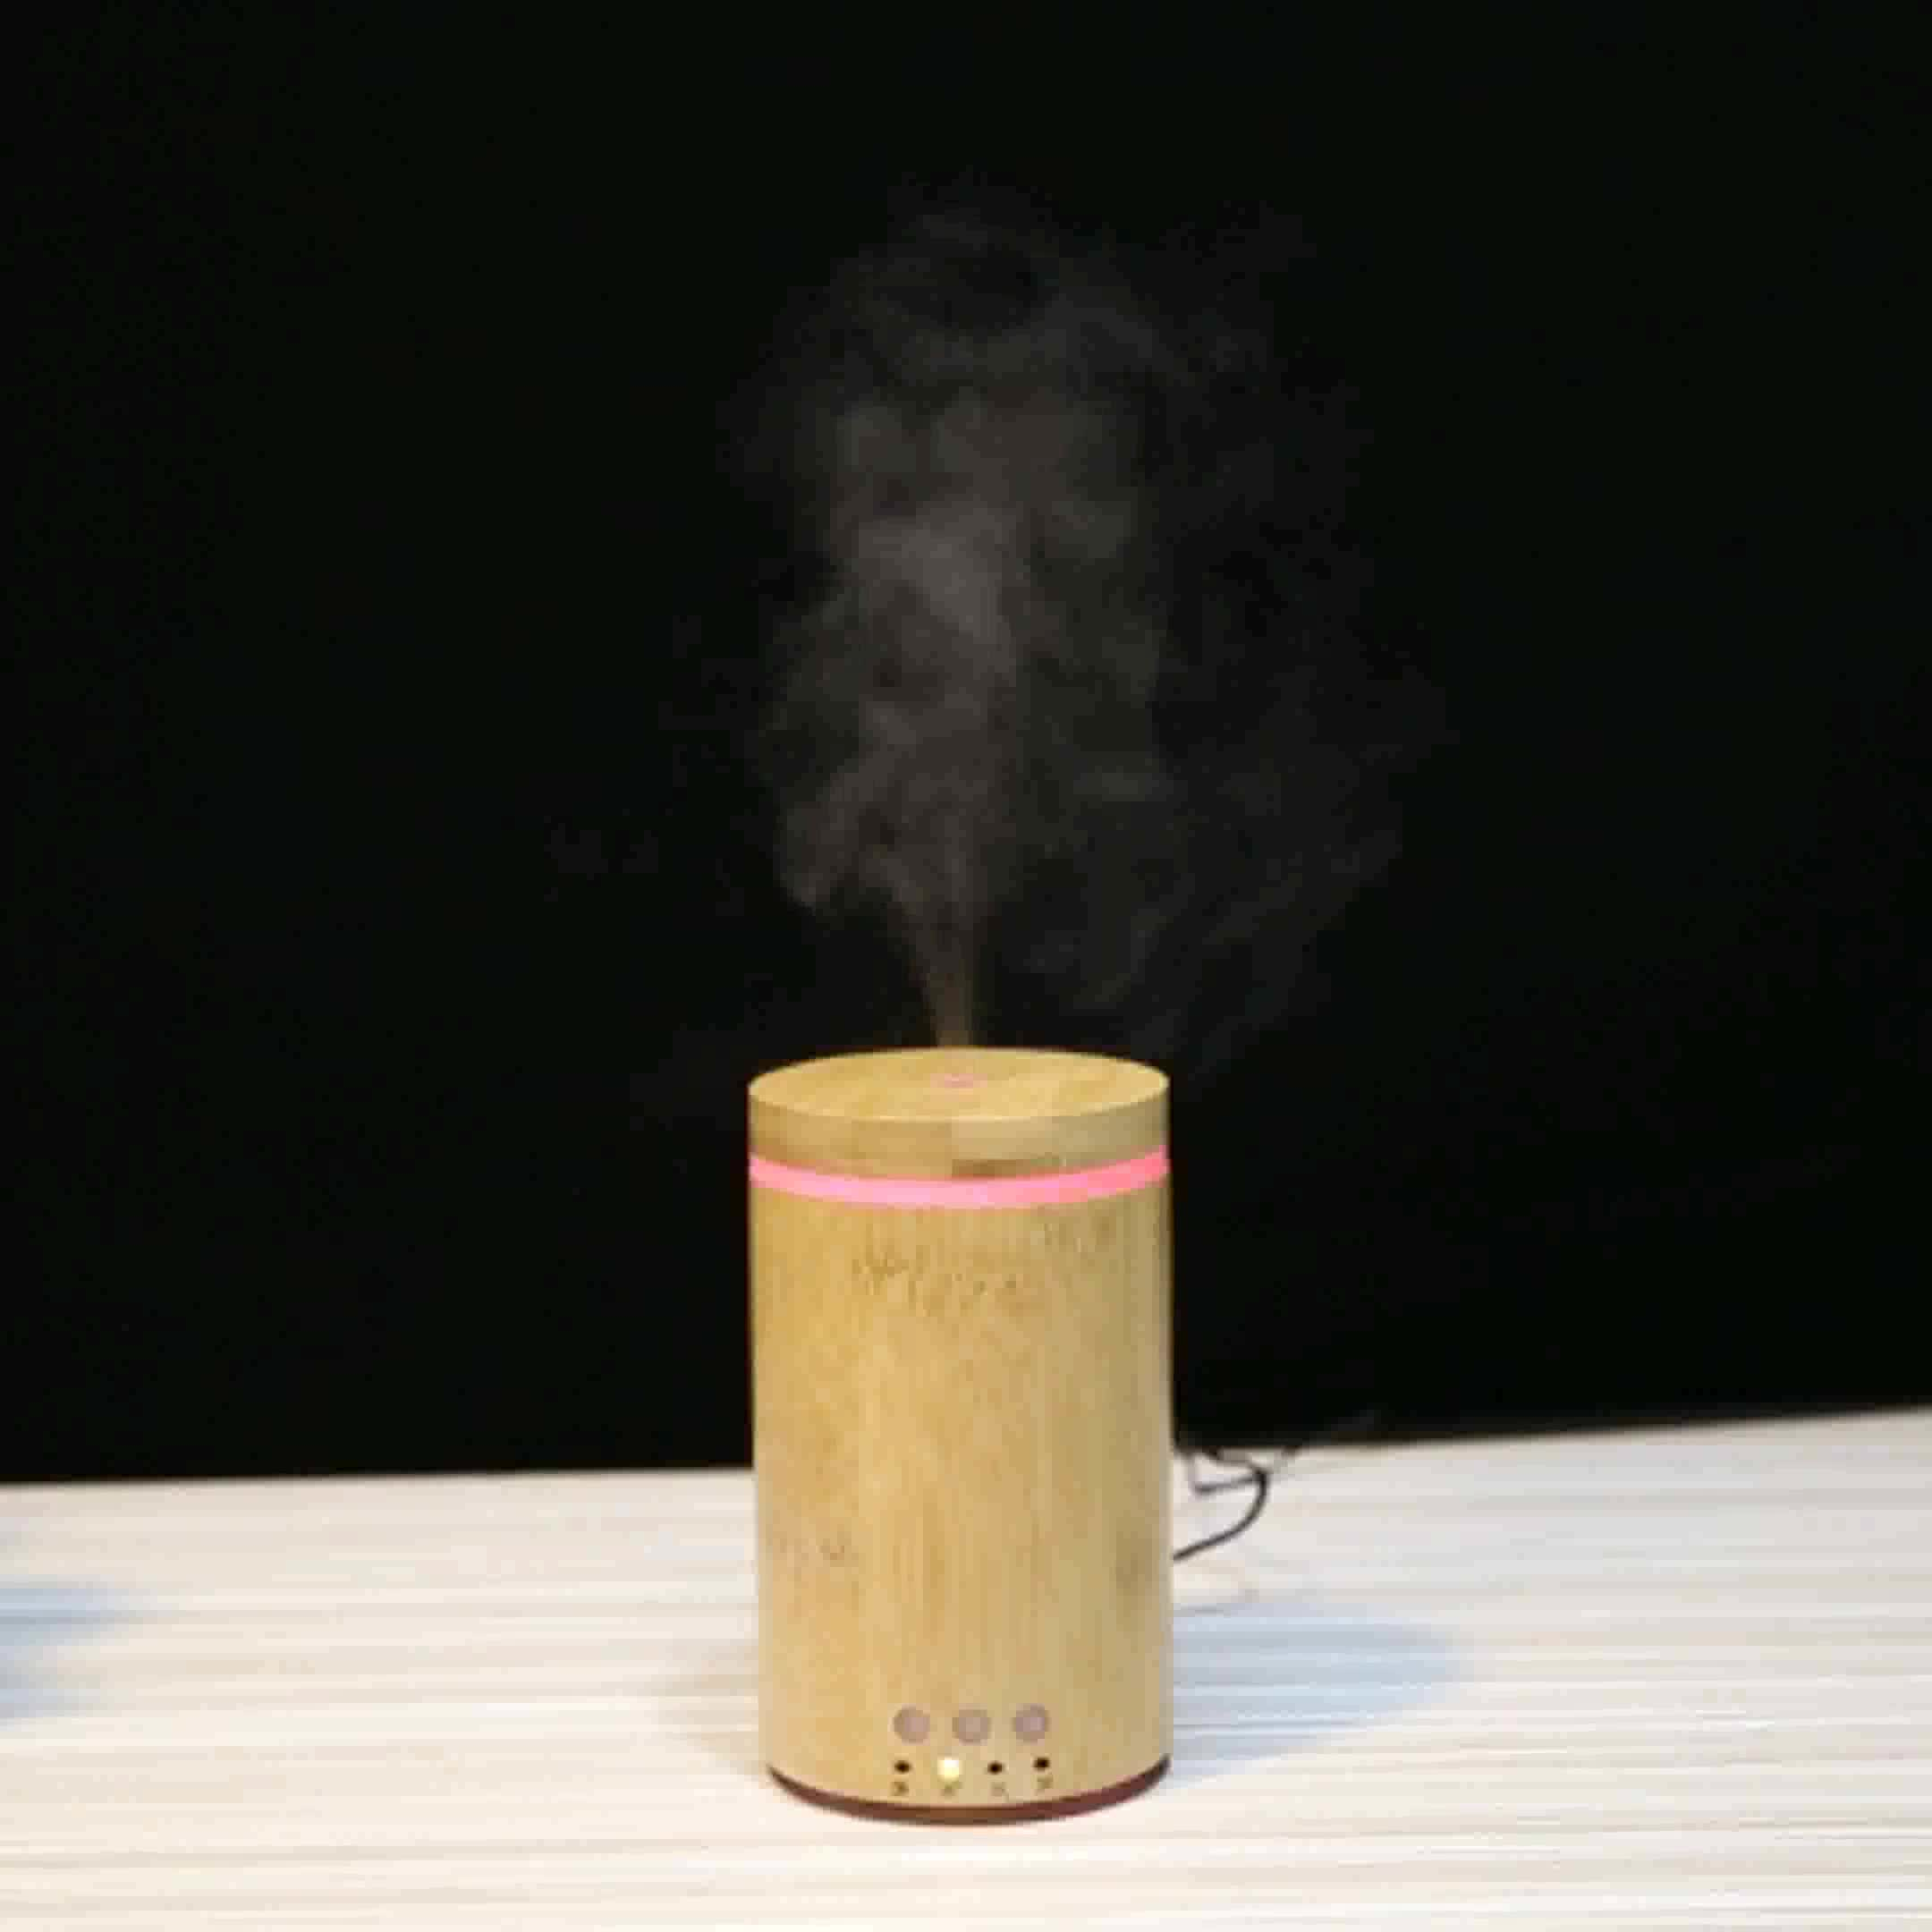 Bamboo essential oil aromatherapy diffuser